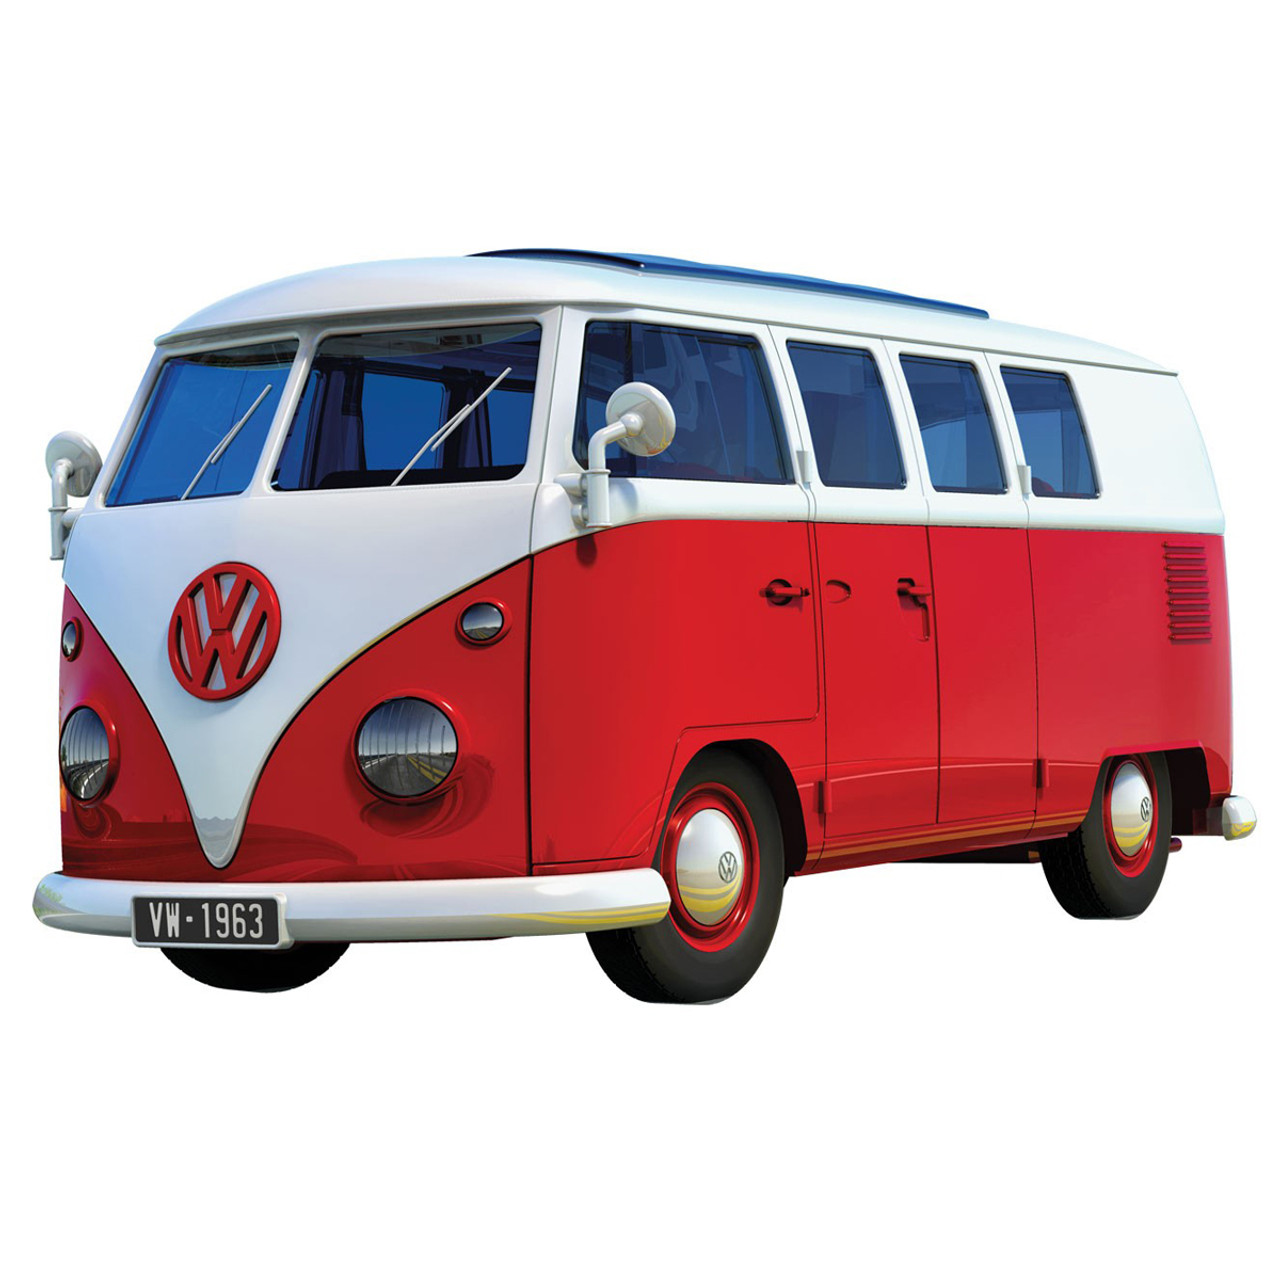 Vw Camper Van >> Airfix Quick Build Volkswagen Red Campervan Requires No Glue And